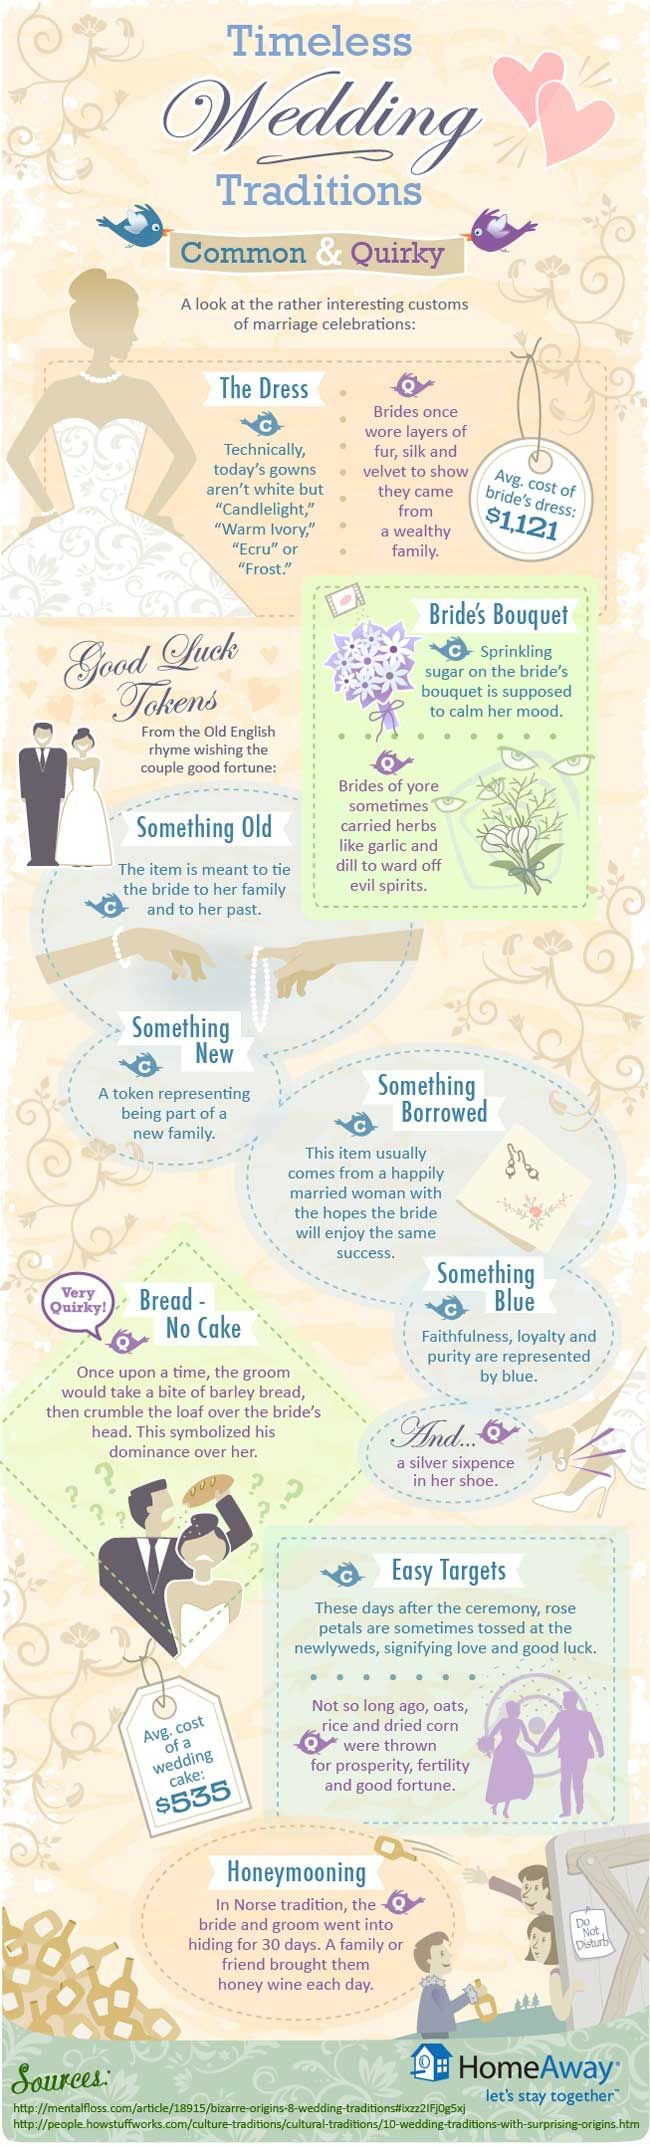 Common And Quirky Wedding Traditions Infographic Something Old New Borrowed